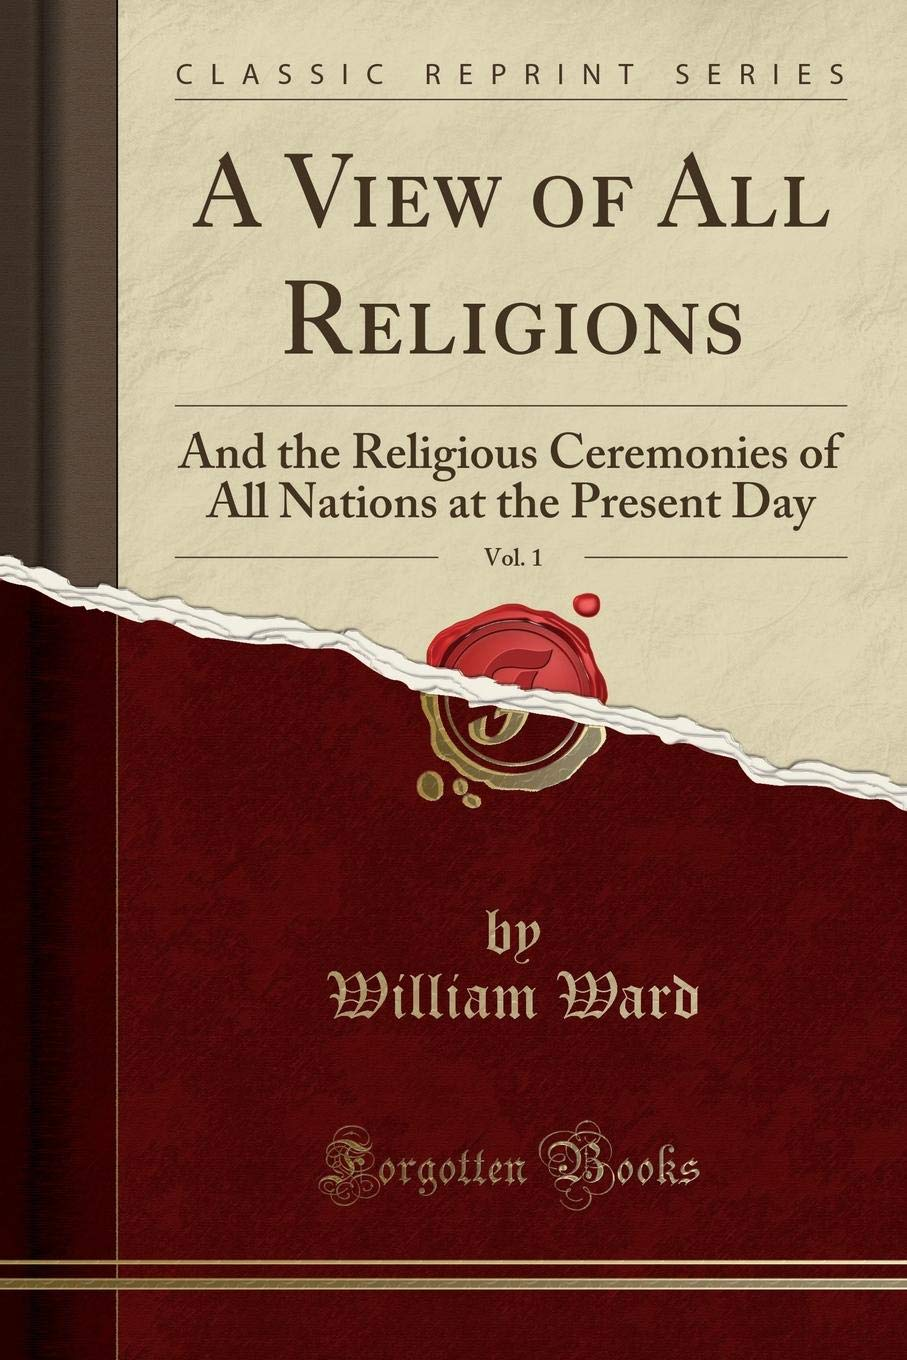 A View of All Religions, Vol. 1: And the Religious Ceremonies of All Nations at the Present Day (Classic Reprint) pdf